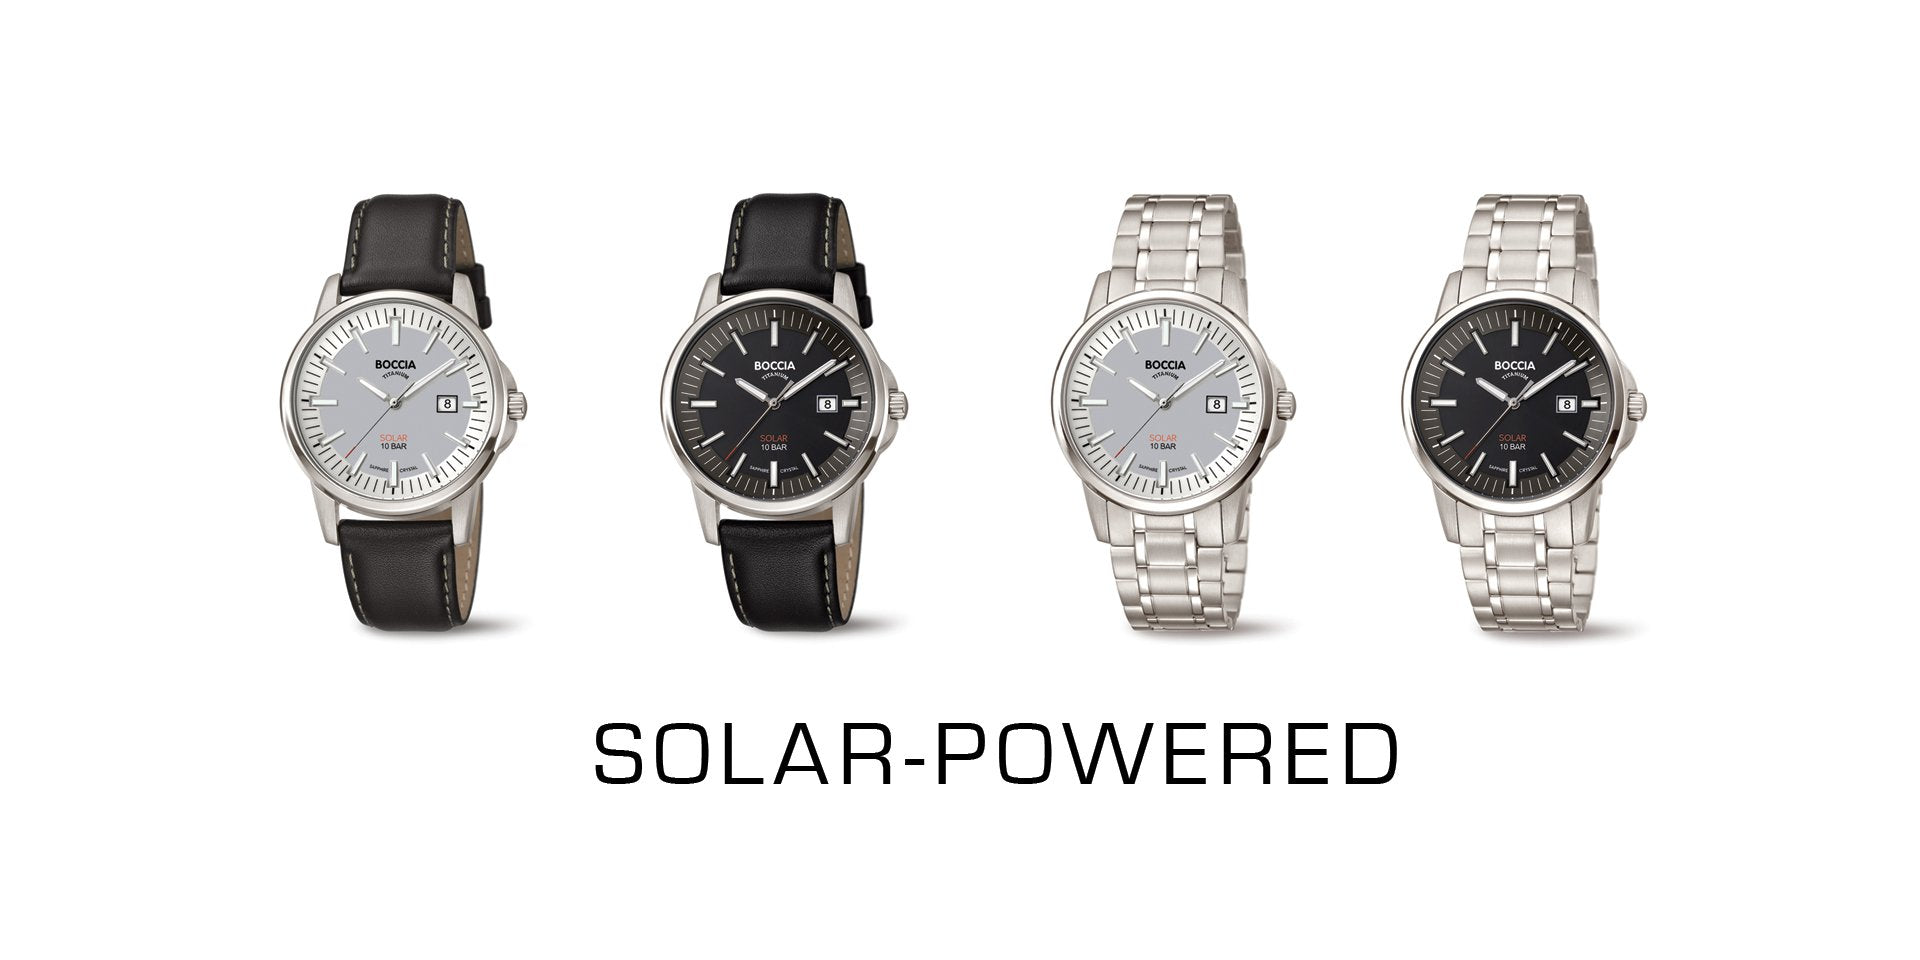 Solar-powered watches